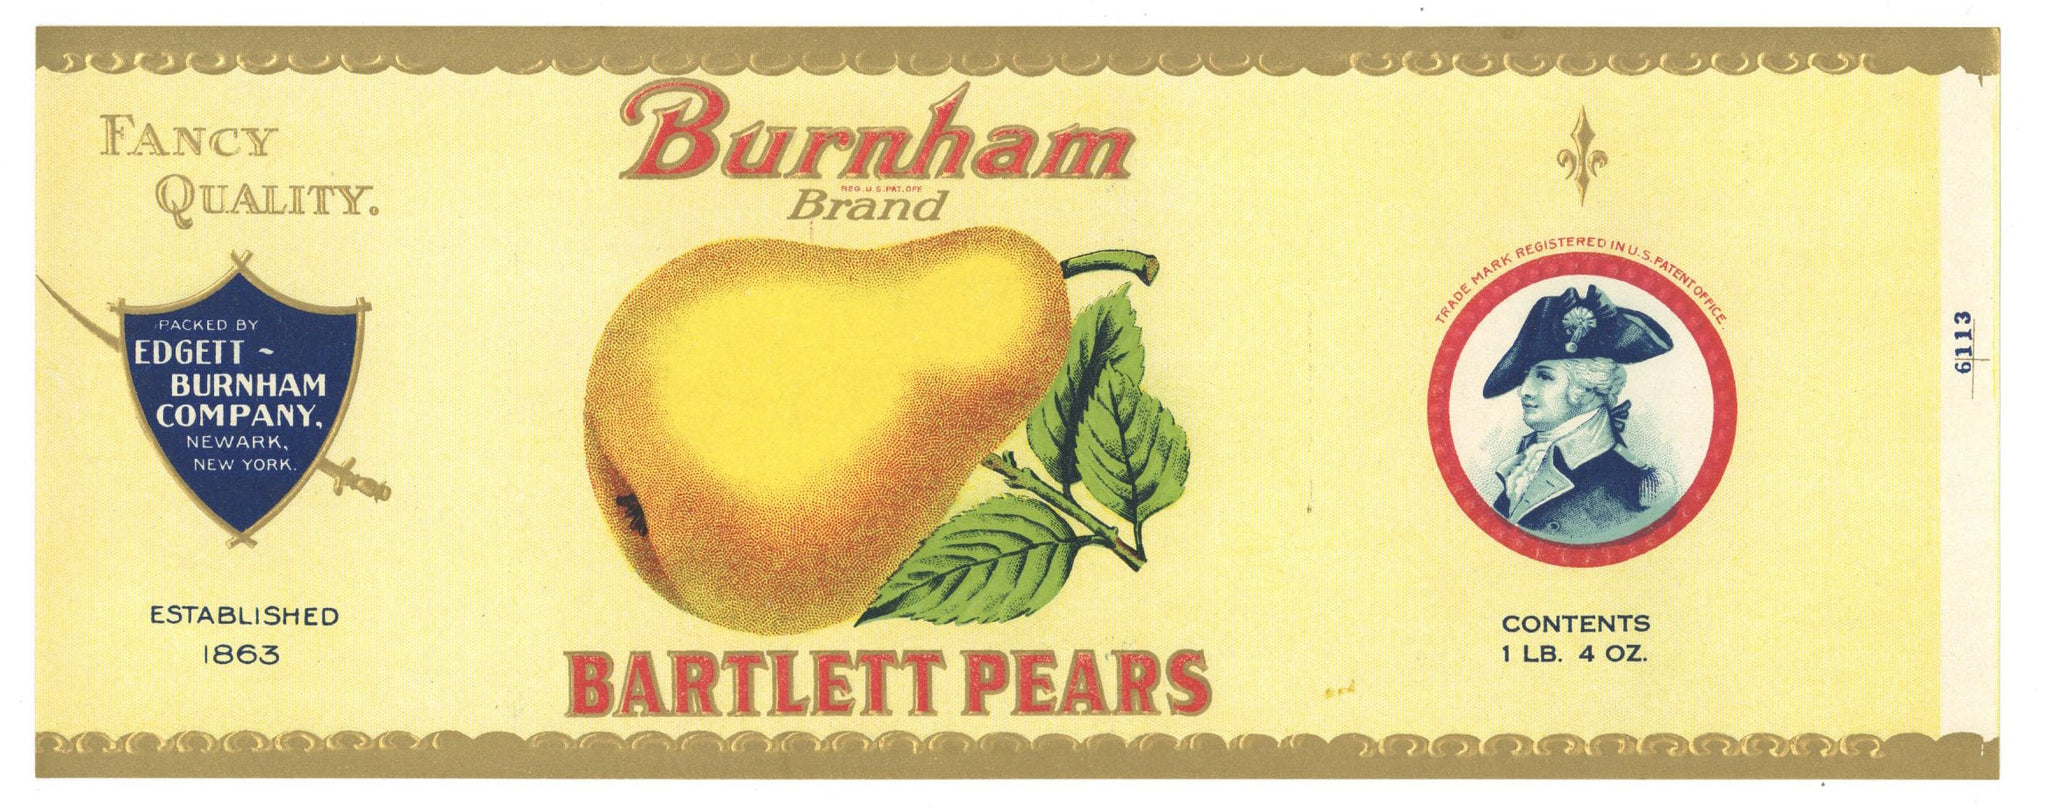 Burnham Brand Vintage Pear Can Label